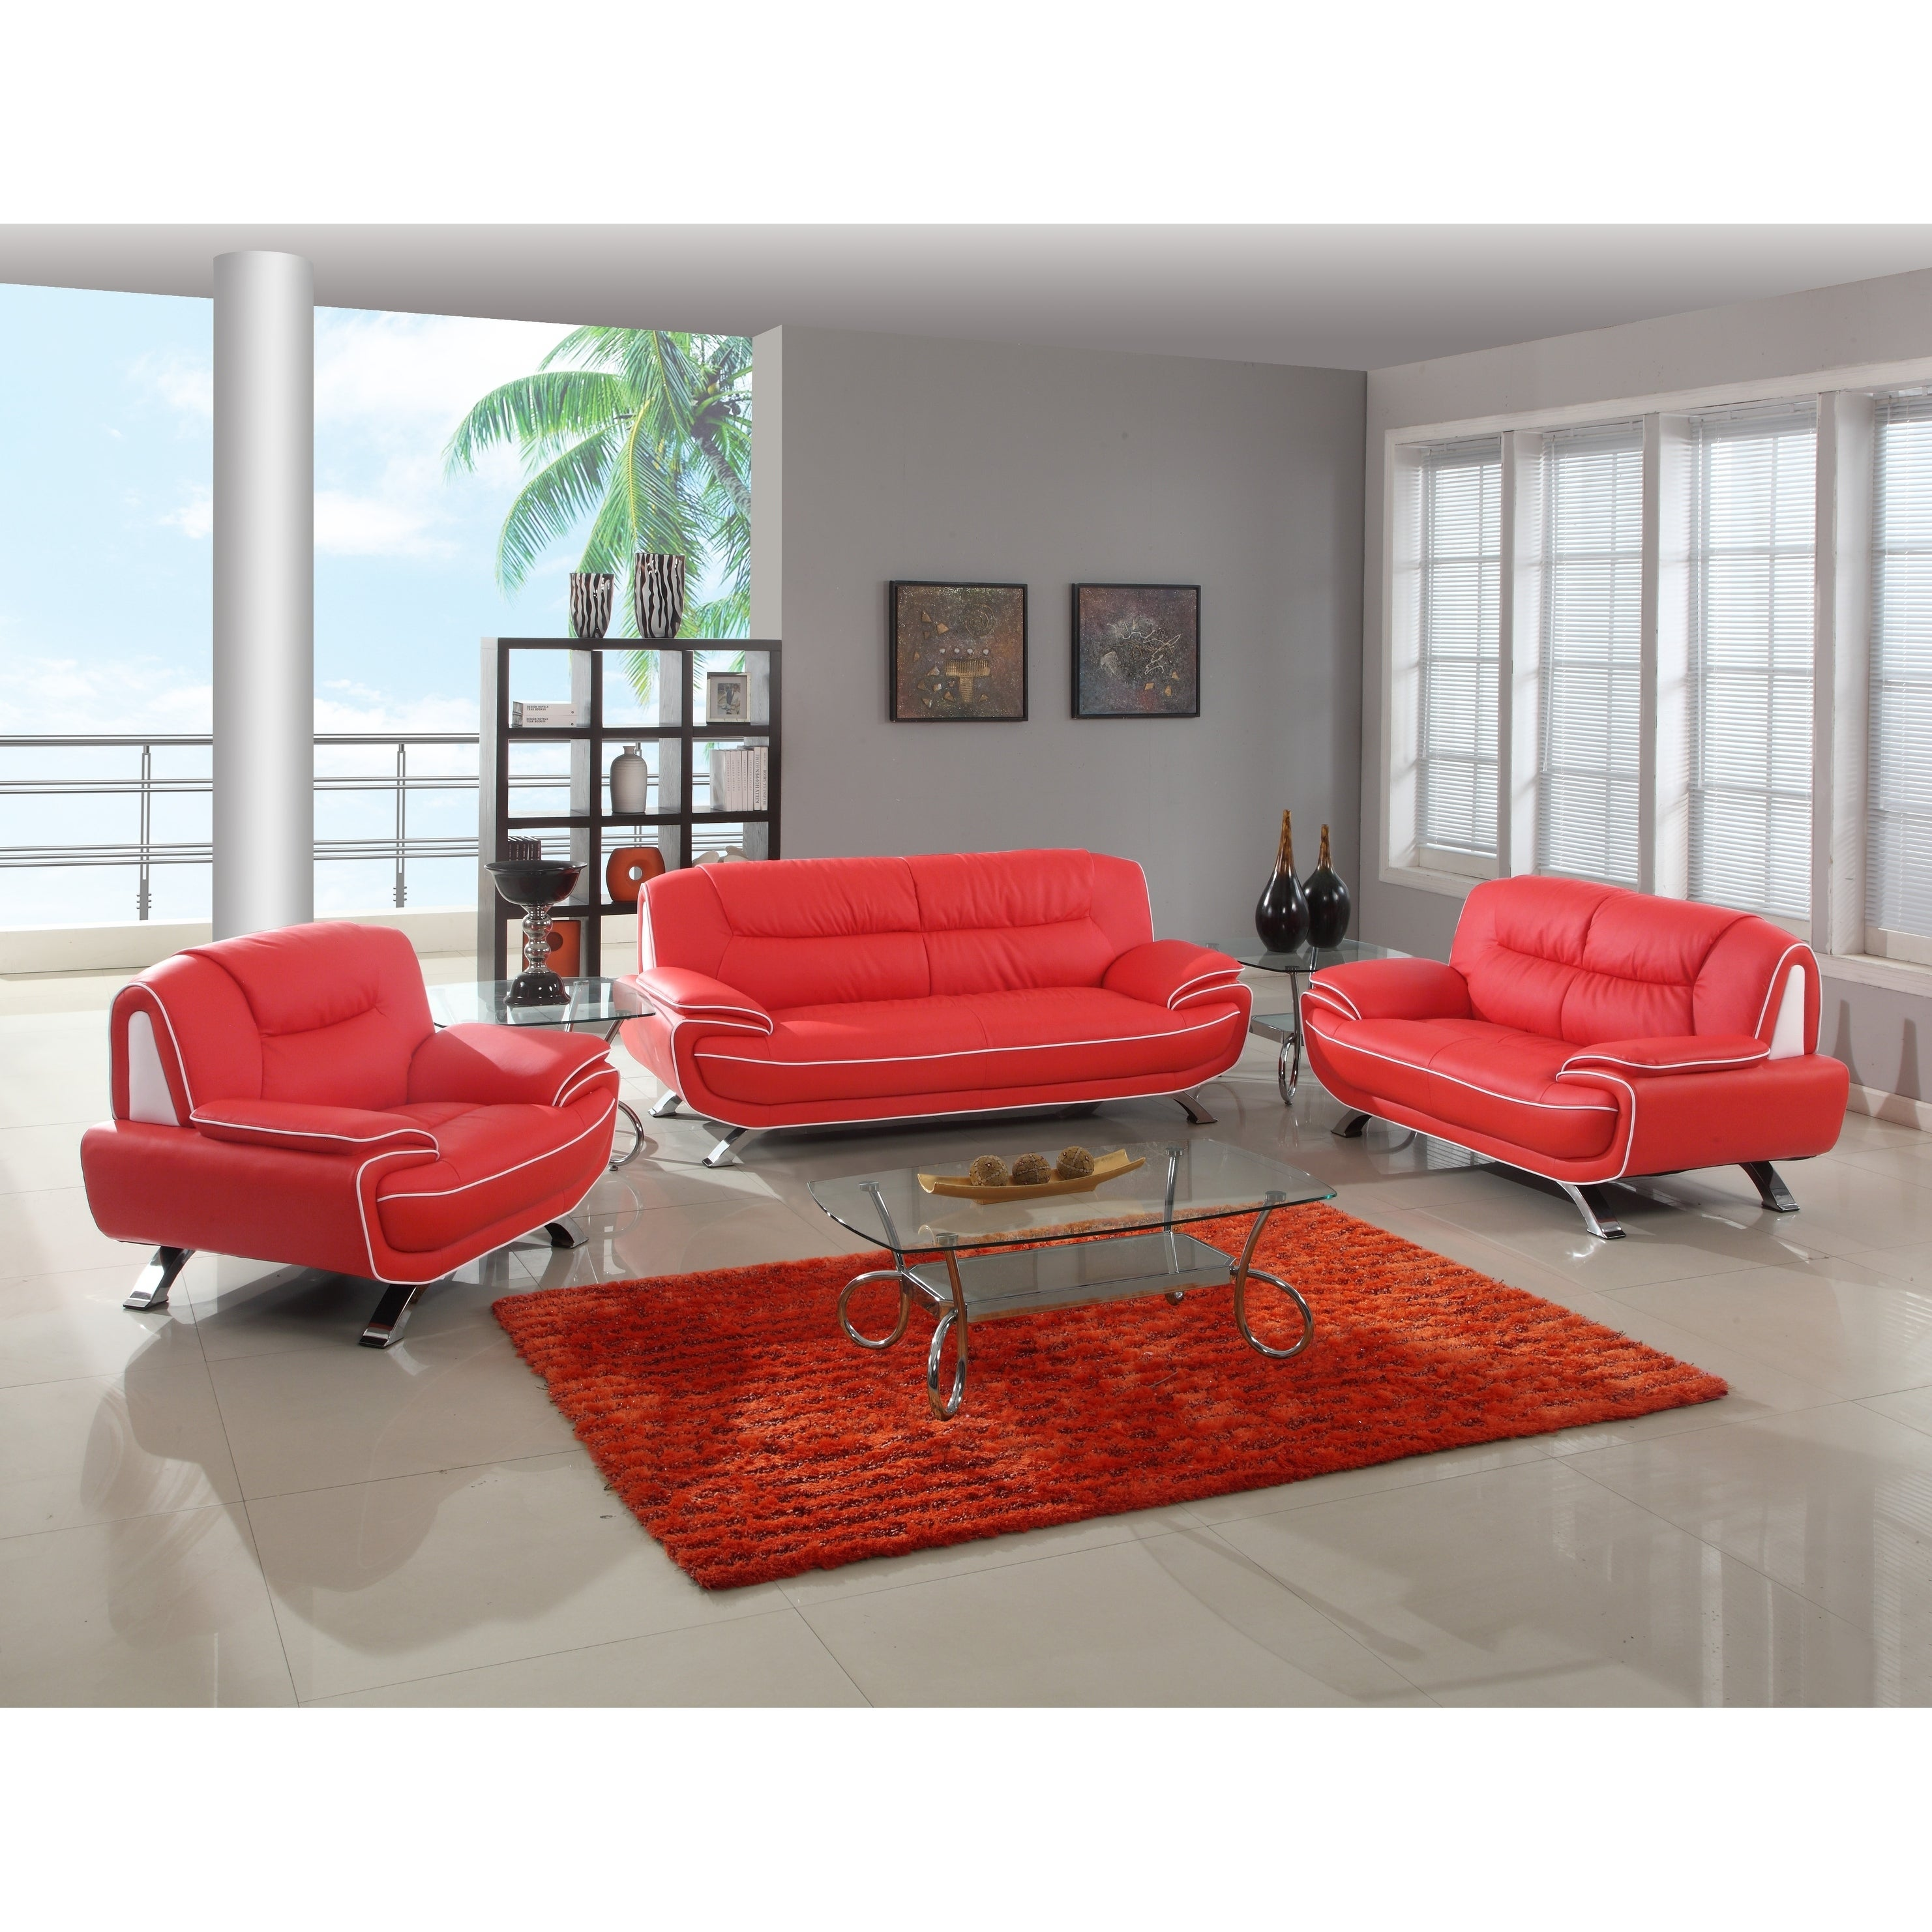 red living room sets. Olympia Luxury Leather/Match Upholstered 3-Piece Living Room Sofa Set (Option: Red Sets N